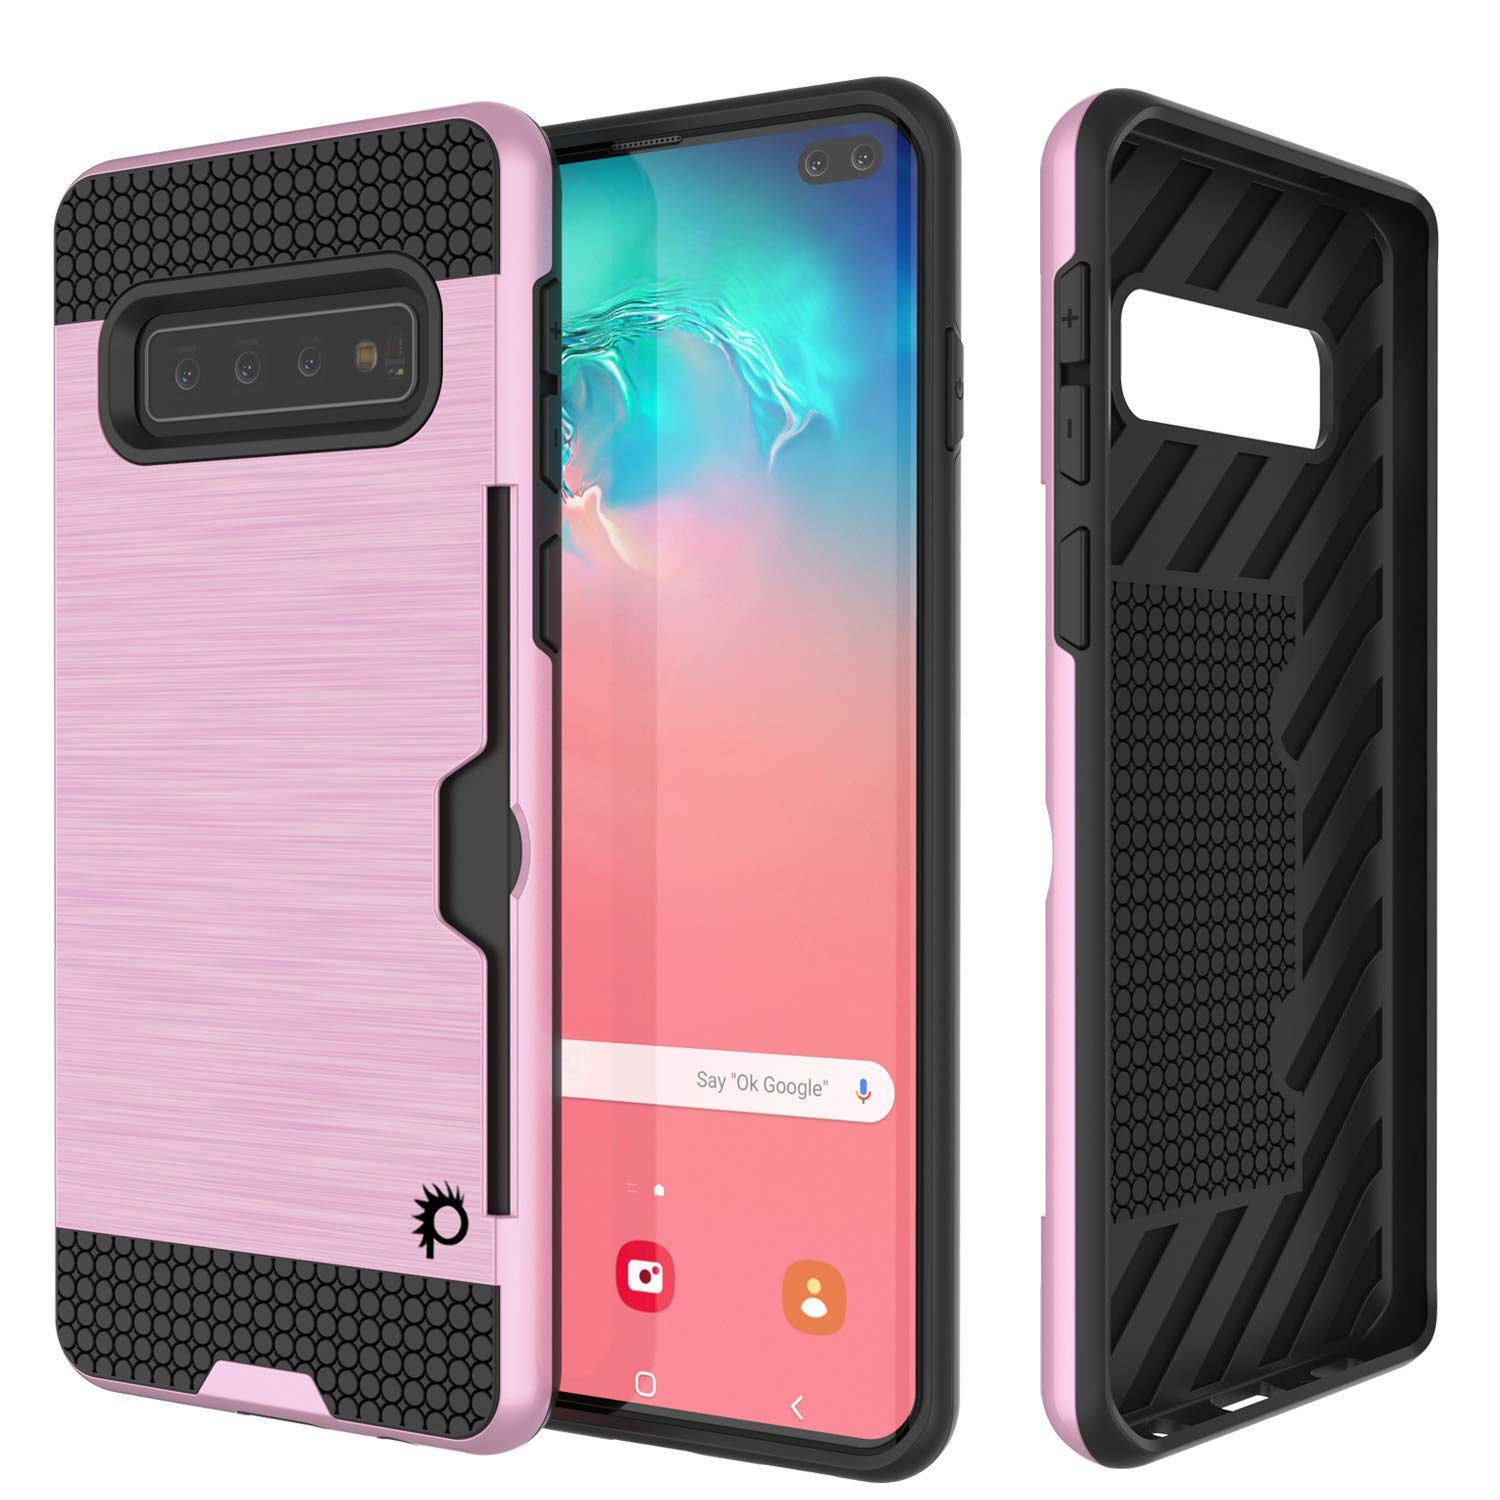 Galaxy S10+ Plus  Case, PUNKcase [SLOT Series] [Slim Fit] Dual-Layer Armor Cover w/Integrated Anti-Shock System, Credit Card Slot [Pink]